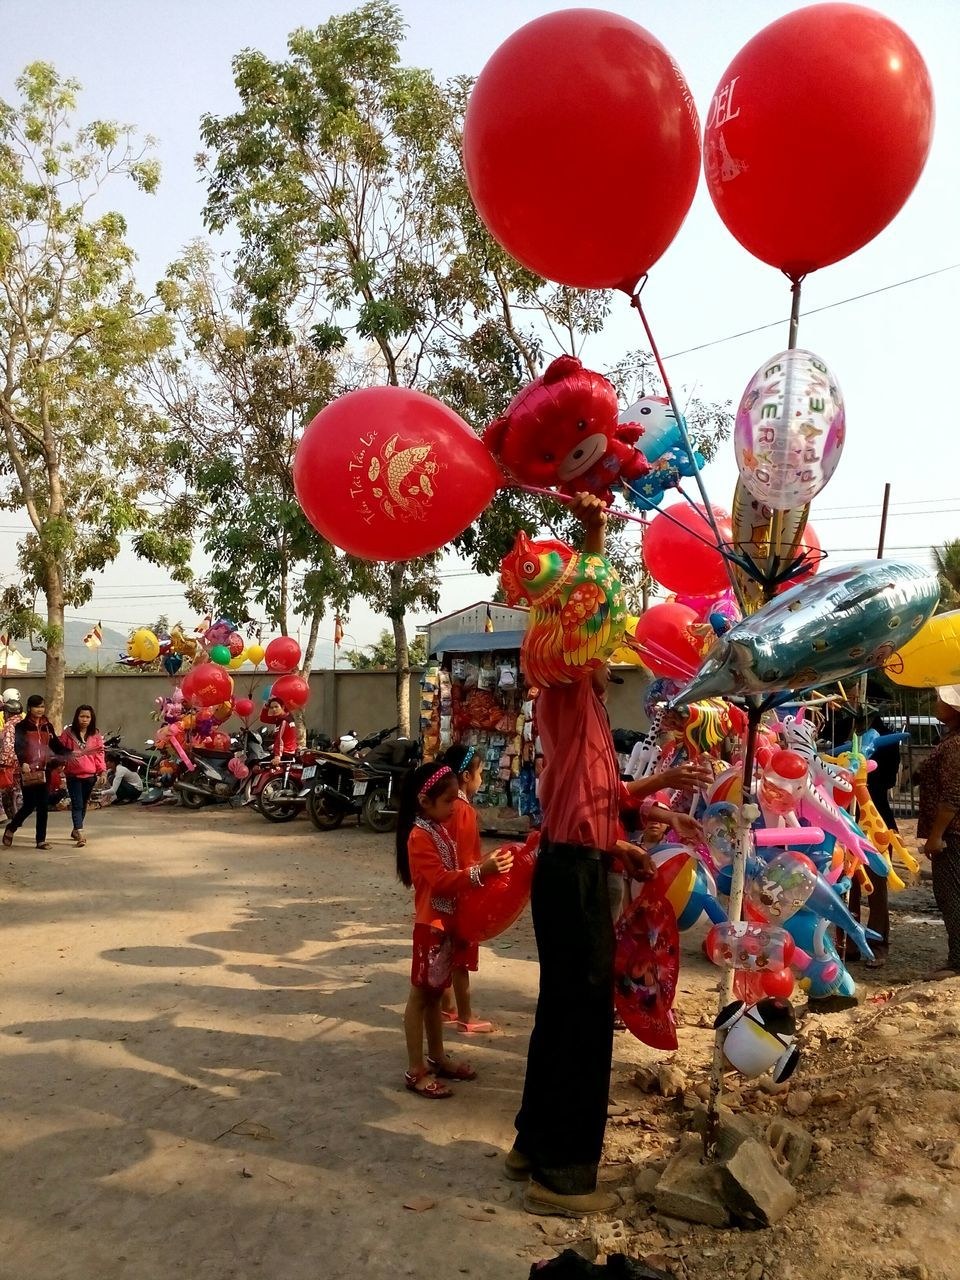 balloon, real people, celebration, red, day, men, large group of people, outdoors, helium balloon, lifestyles, tree, women, sky